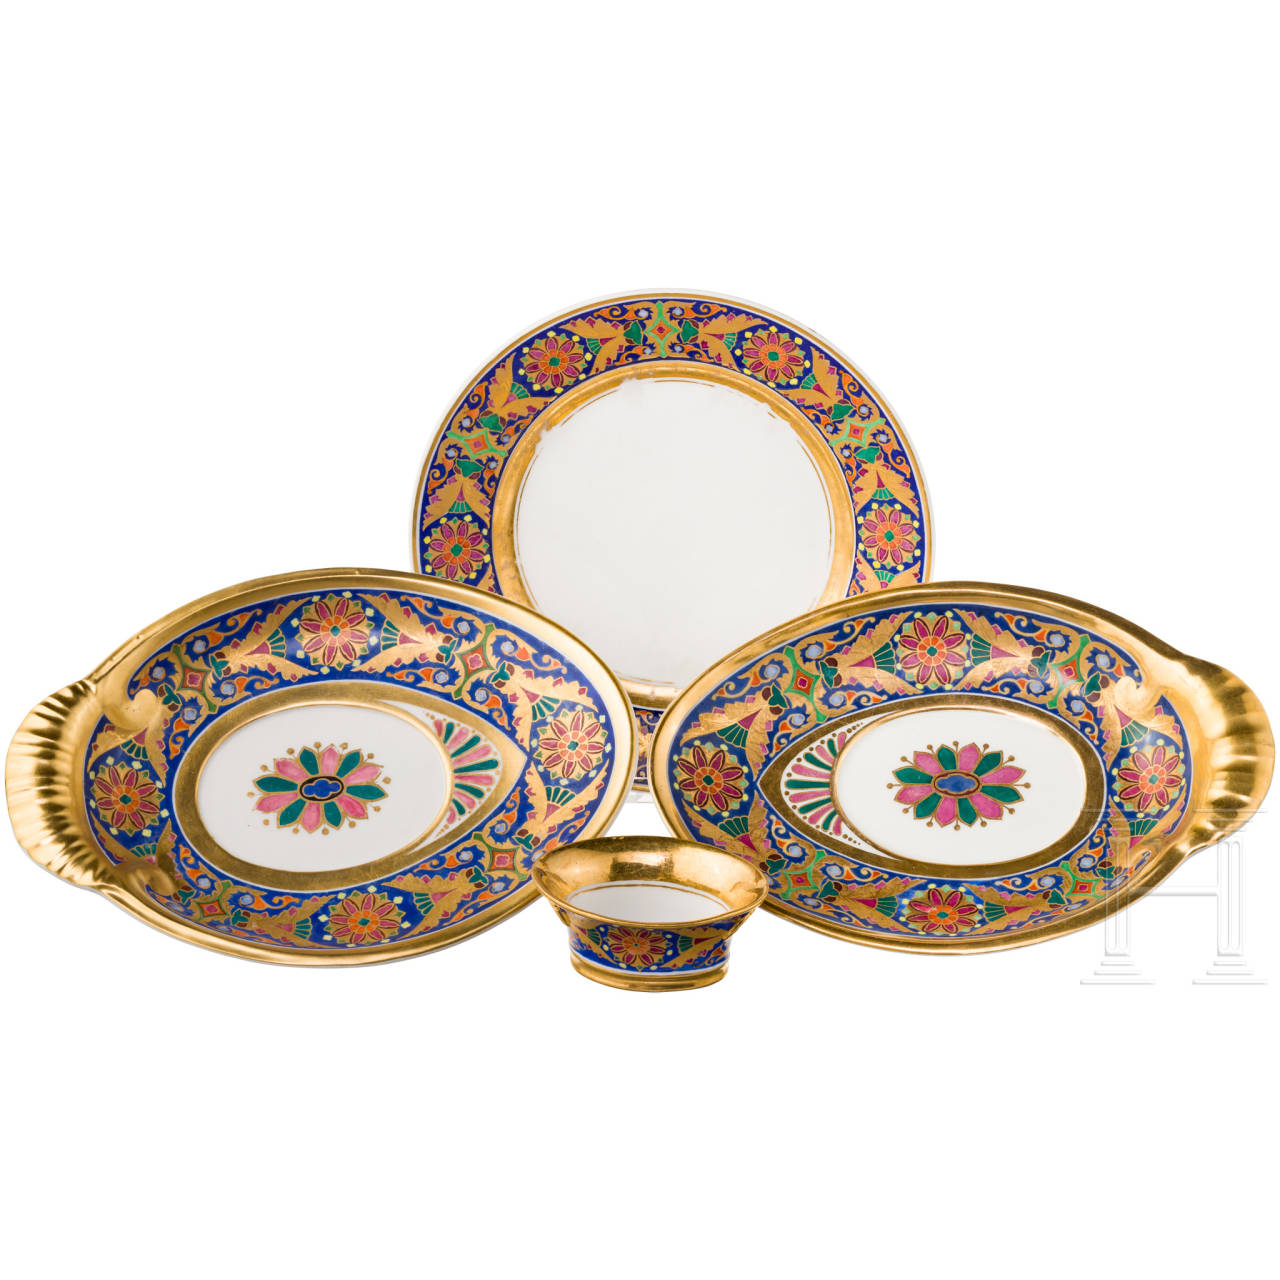 A Russian plate, two oval bowls and a spice container from the Gothic service, Imperial Porcelain Manufactory St. Petersburg, reign of Tsar Nicholas I, ca. 1833/40